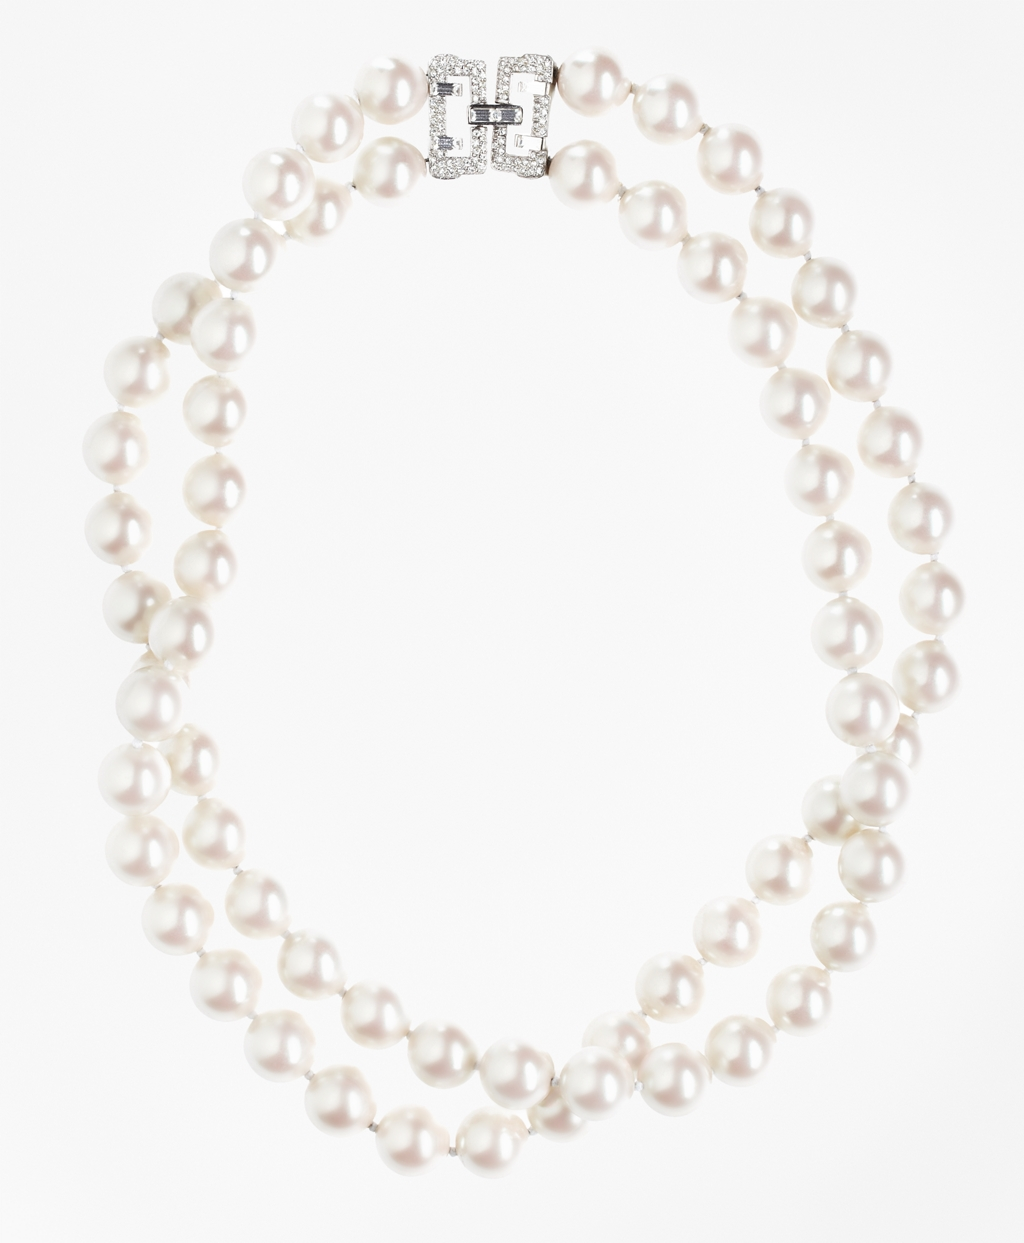 1930s Jewelry | Art Deco Style Jewelry Brooks Brothers Womens Double-Strand Glass Pearl Necklace $398.00 AT vintagedancer.com